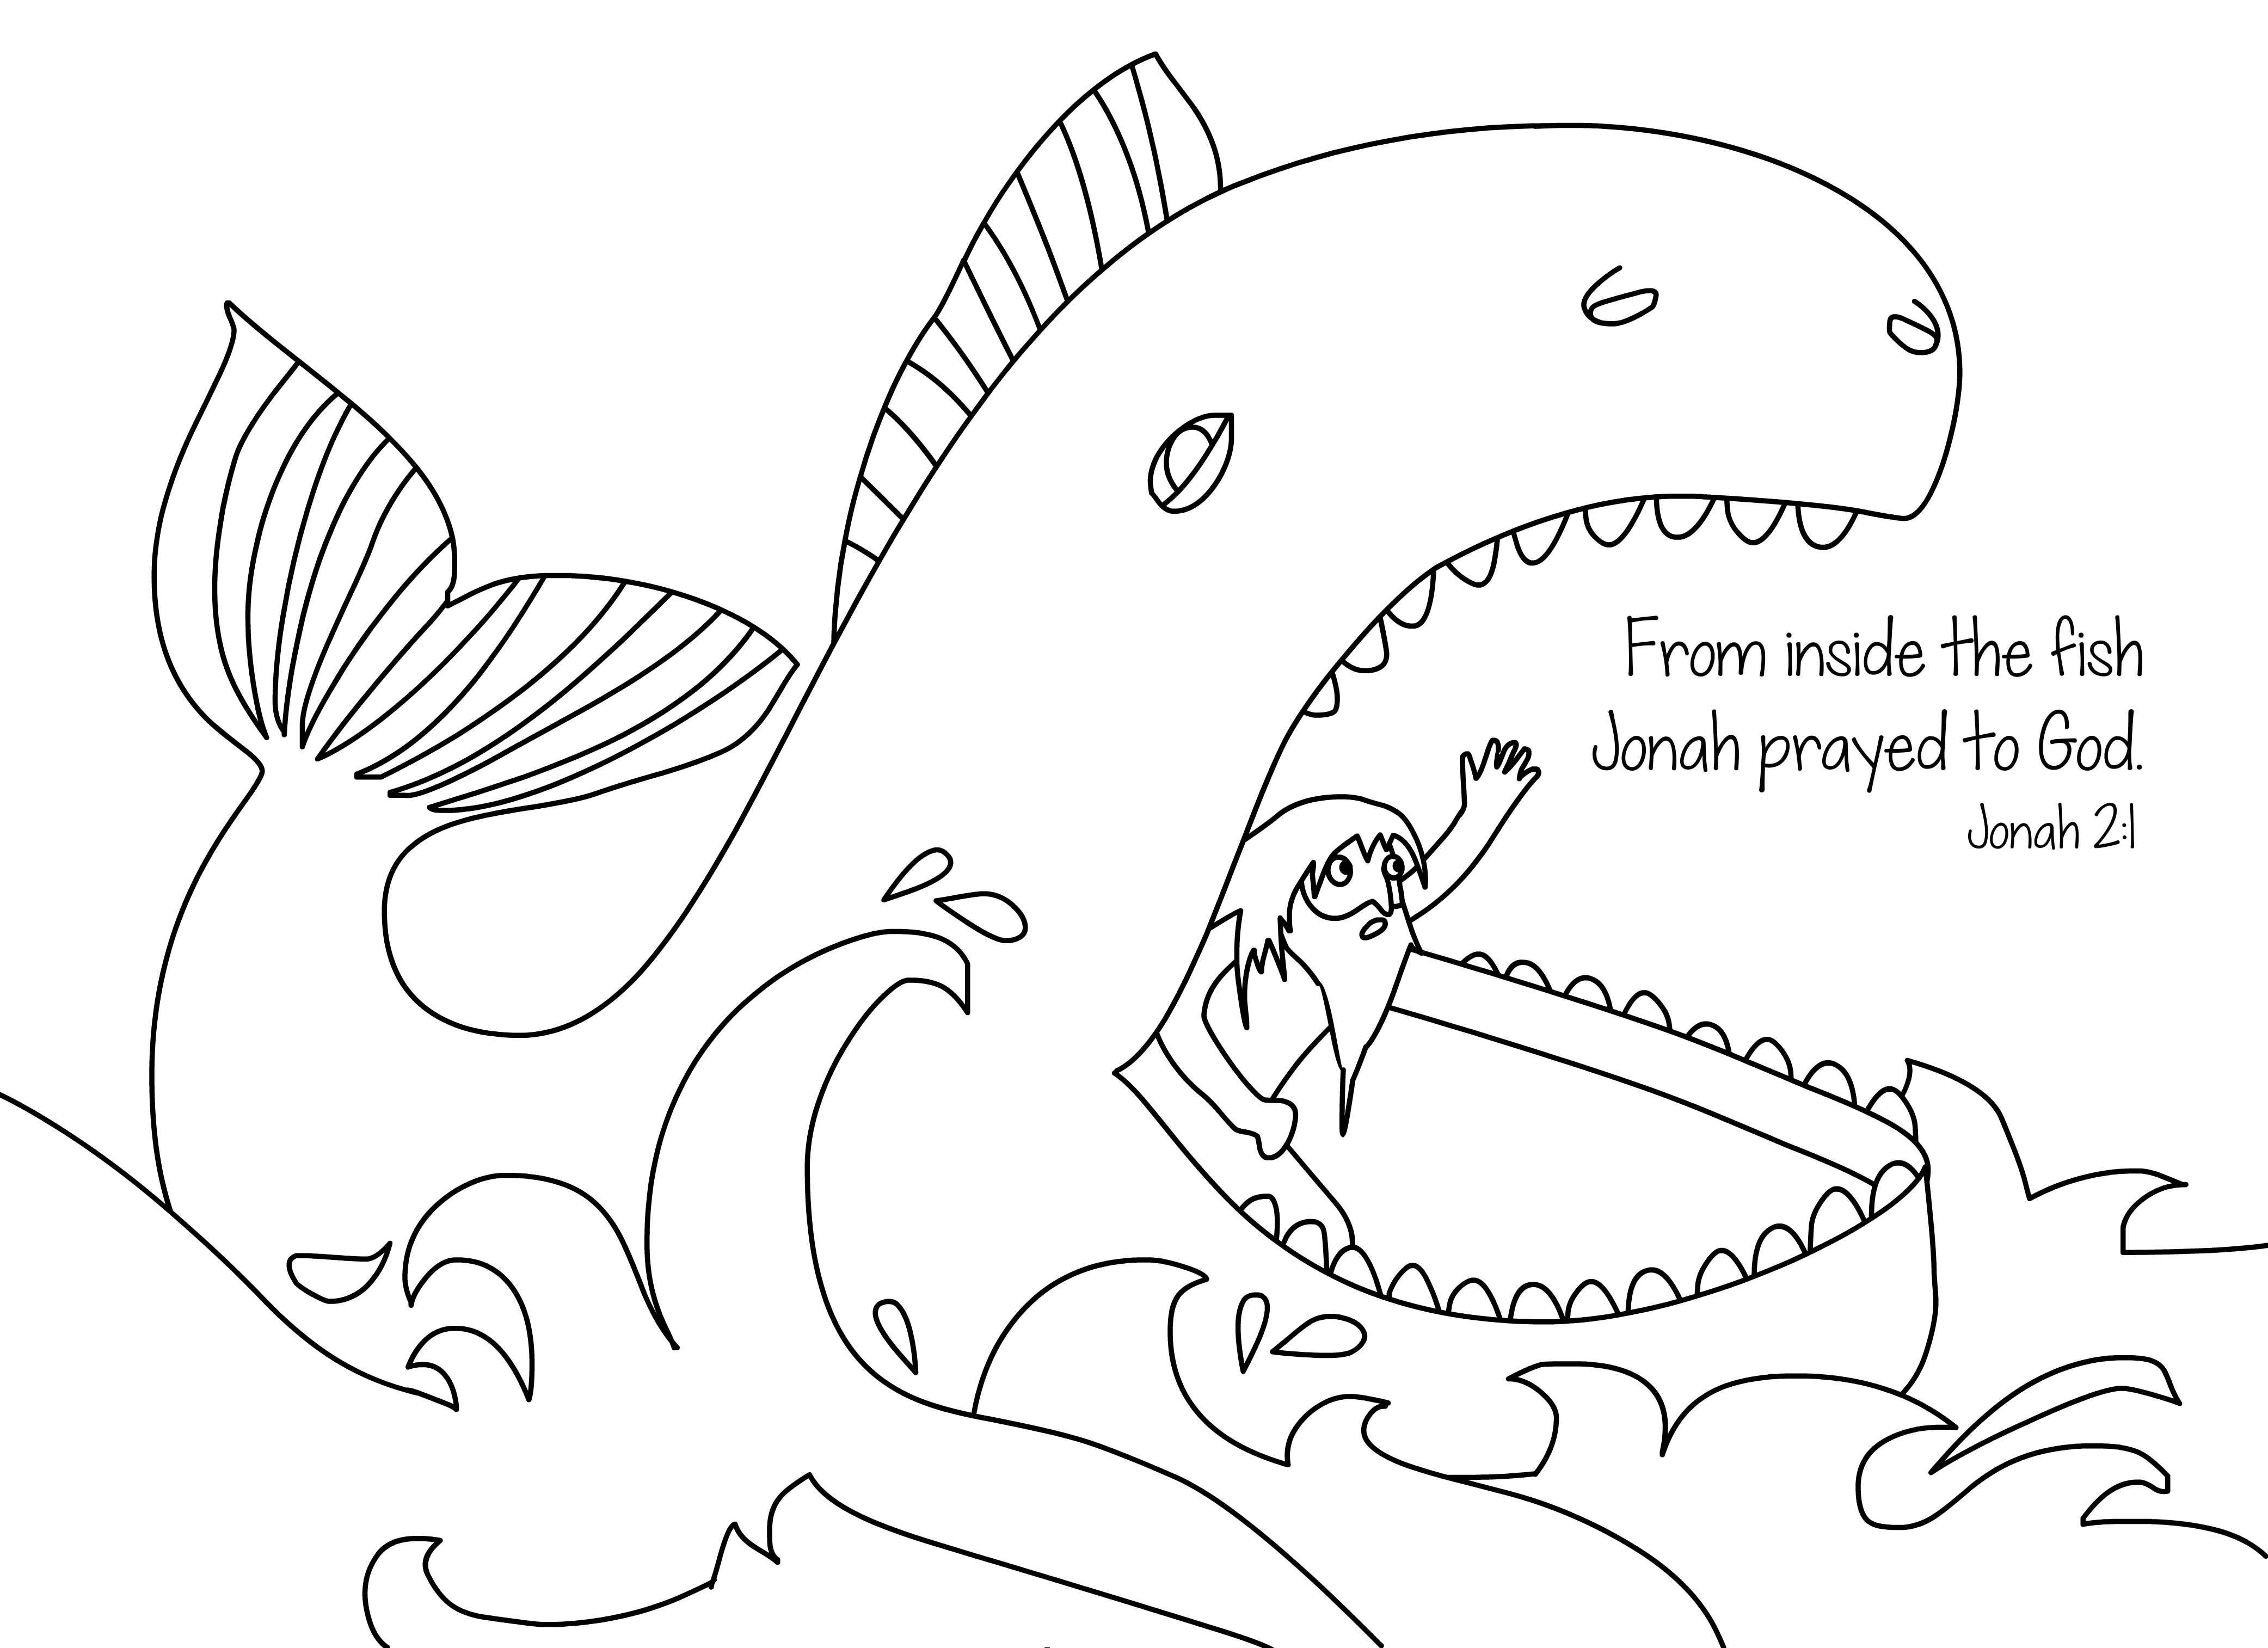 jonah and the whale colouring jonah and the whale coloring pages coloring pages colouring whale jonah the and